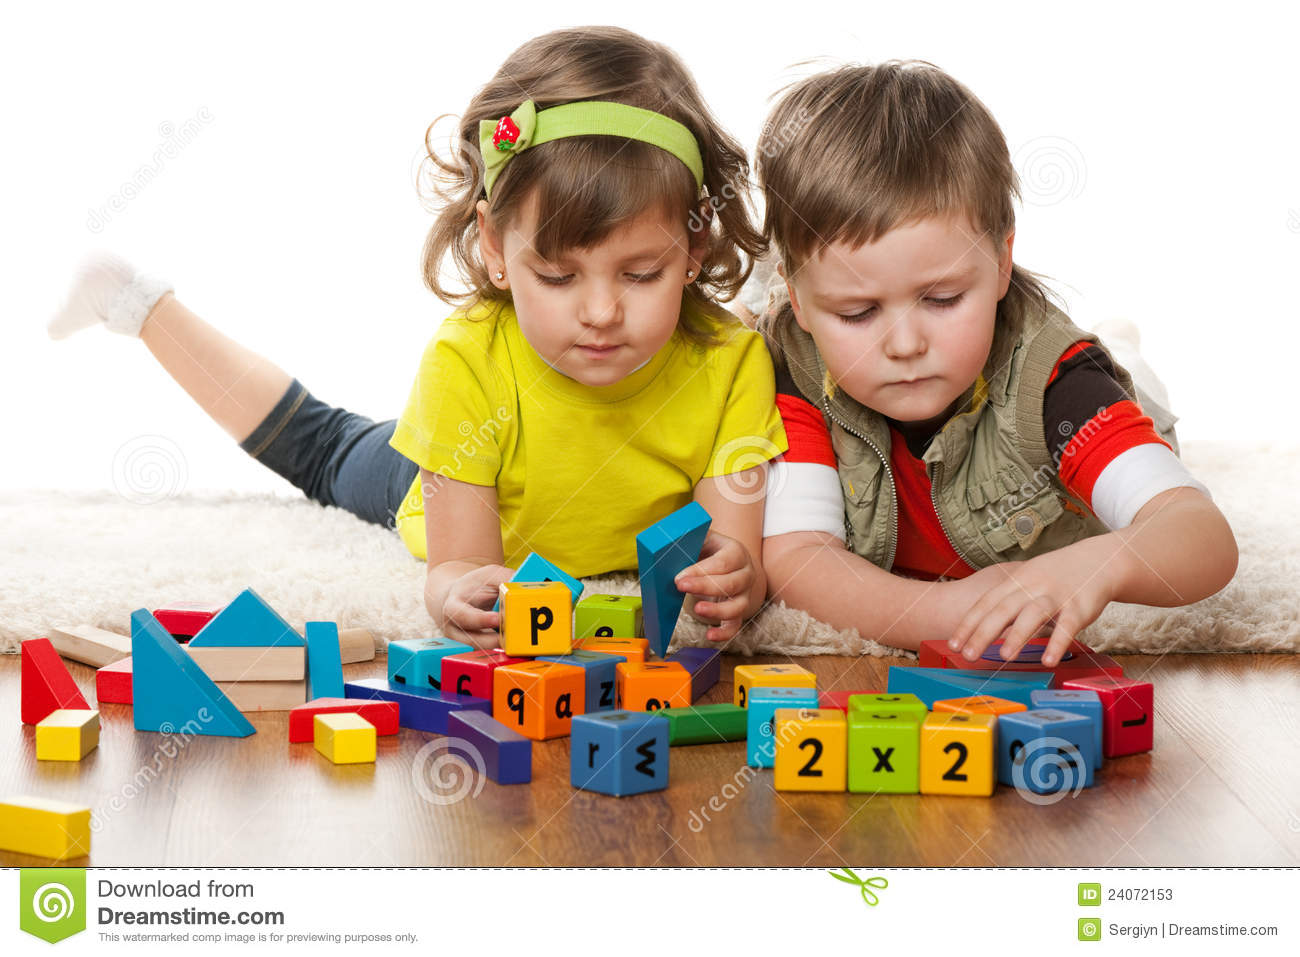 How To Read Floor Plans Two Children Are Playing On The Floor Stock Photos Image